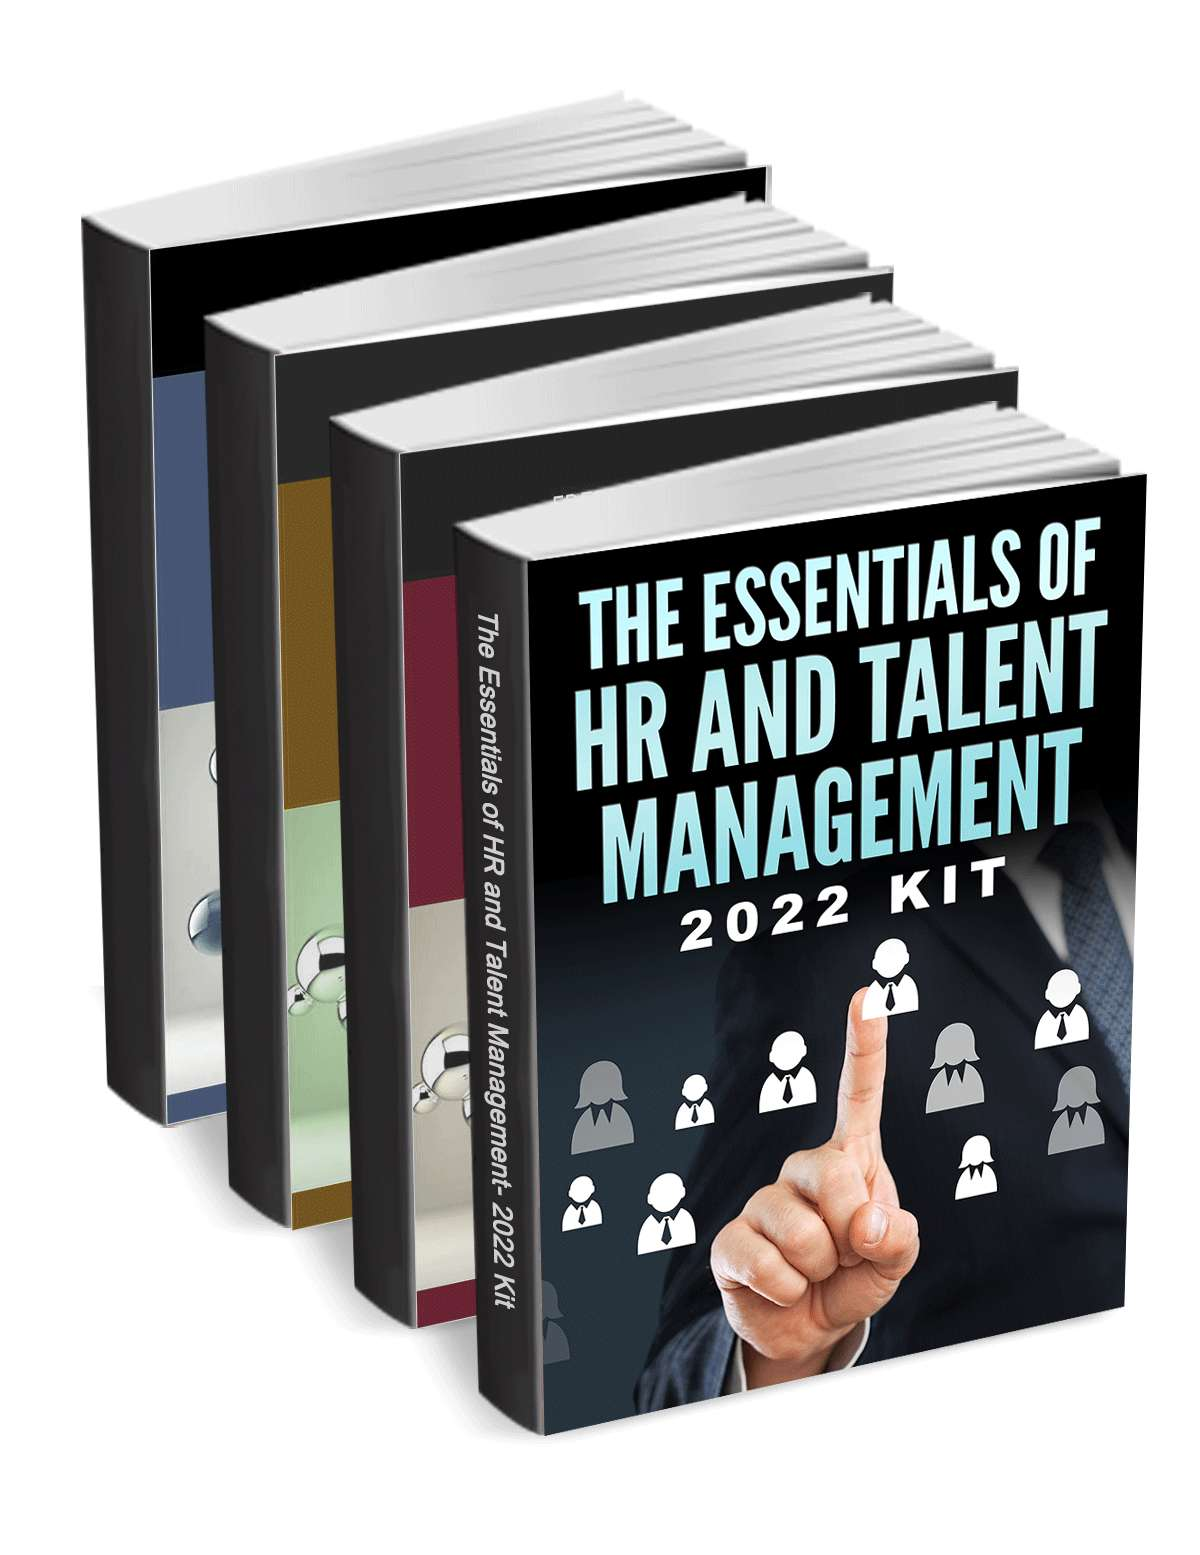 The Essentials of HR and Talent Management - May 2017 Kit